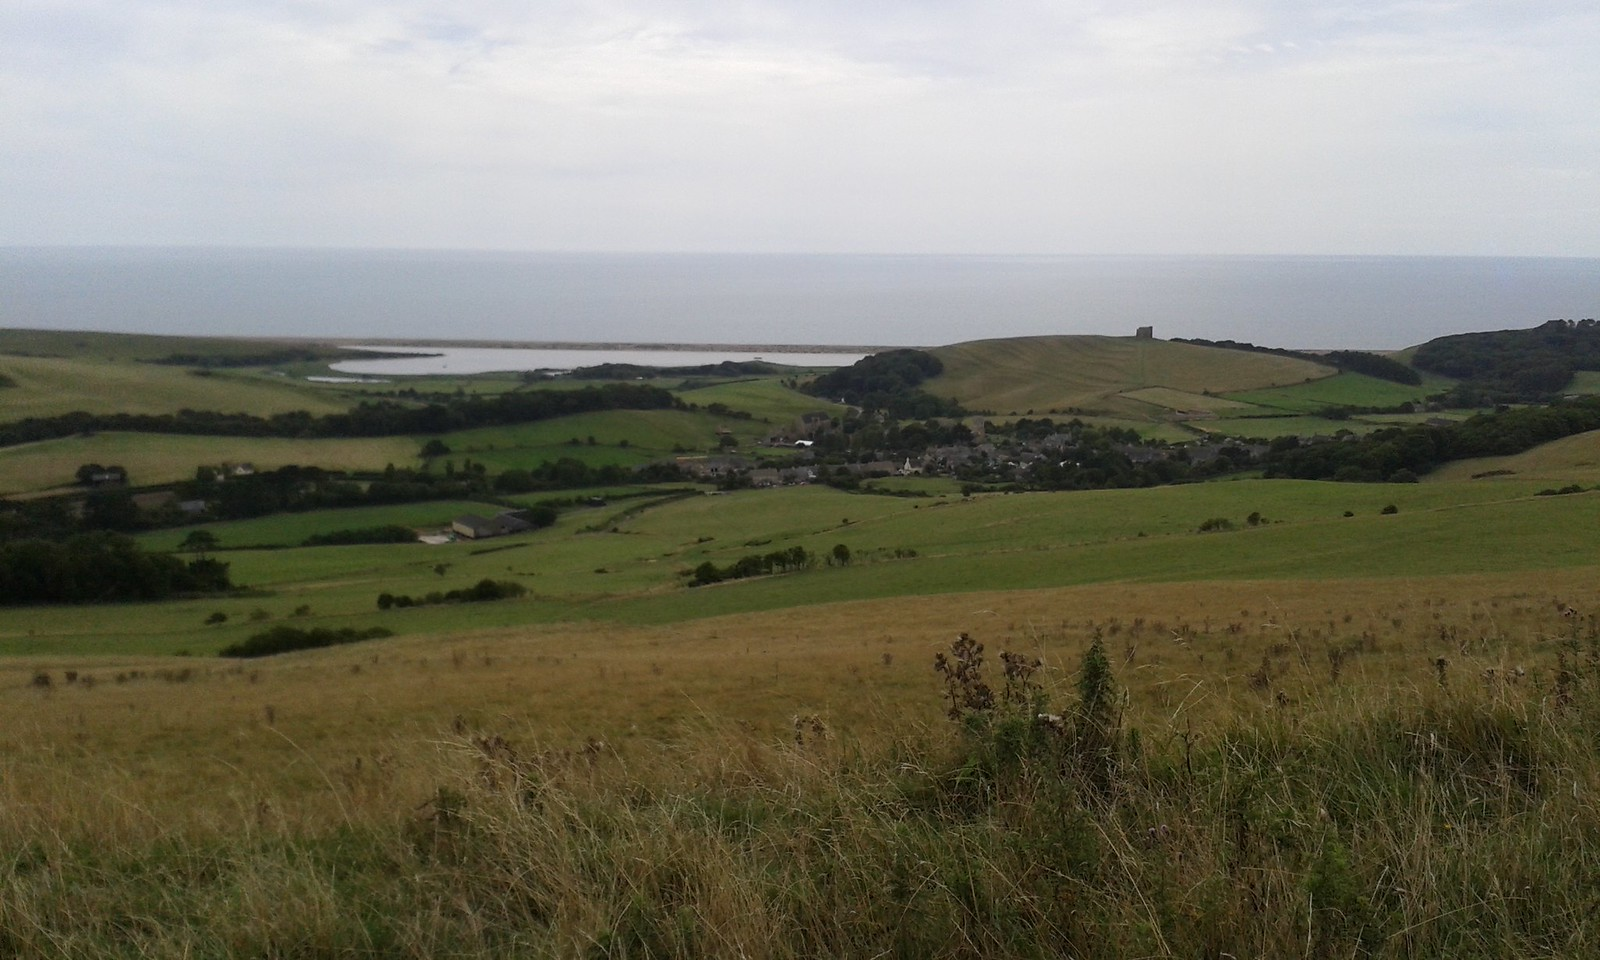 20150816_144142 Chesil Beach in distance